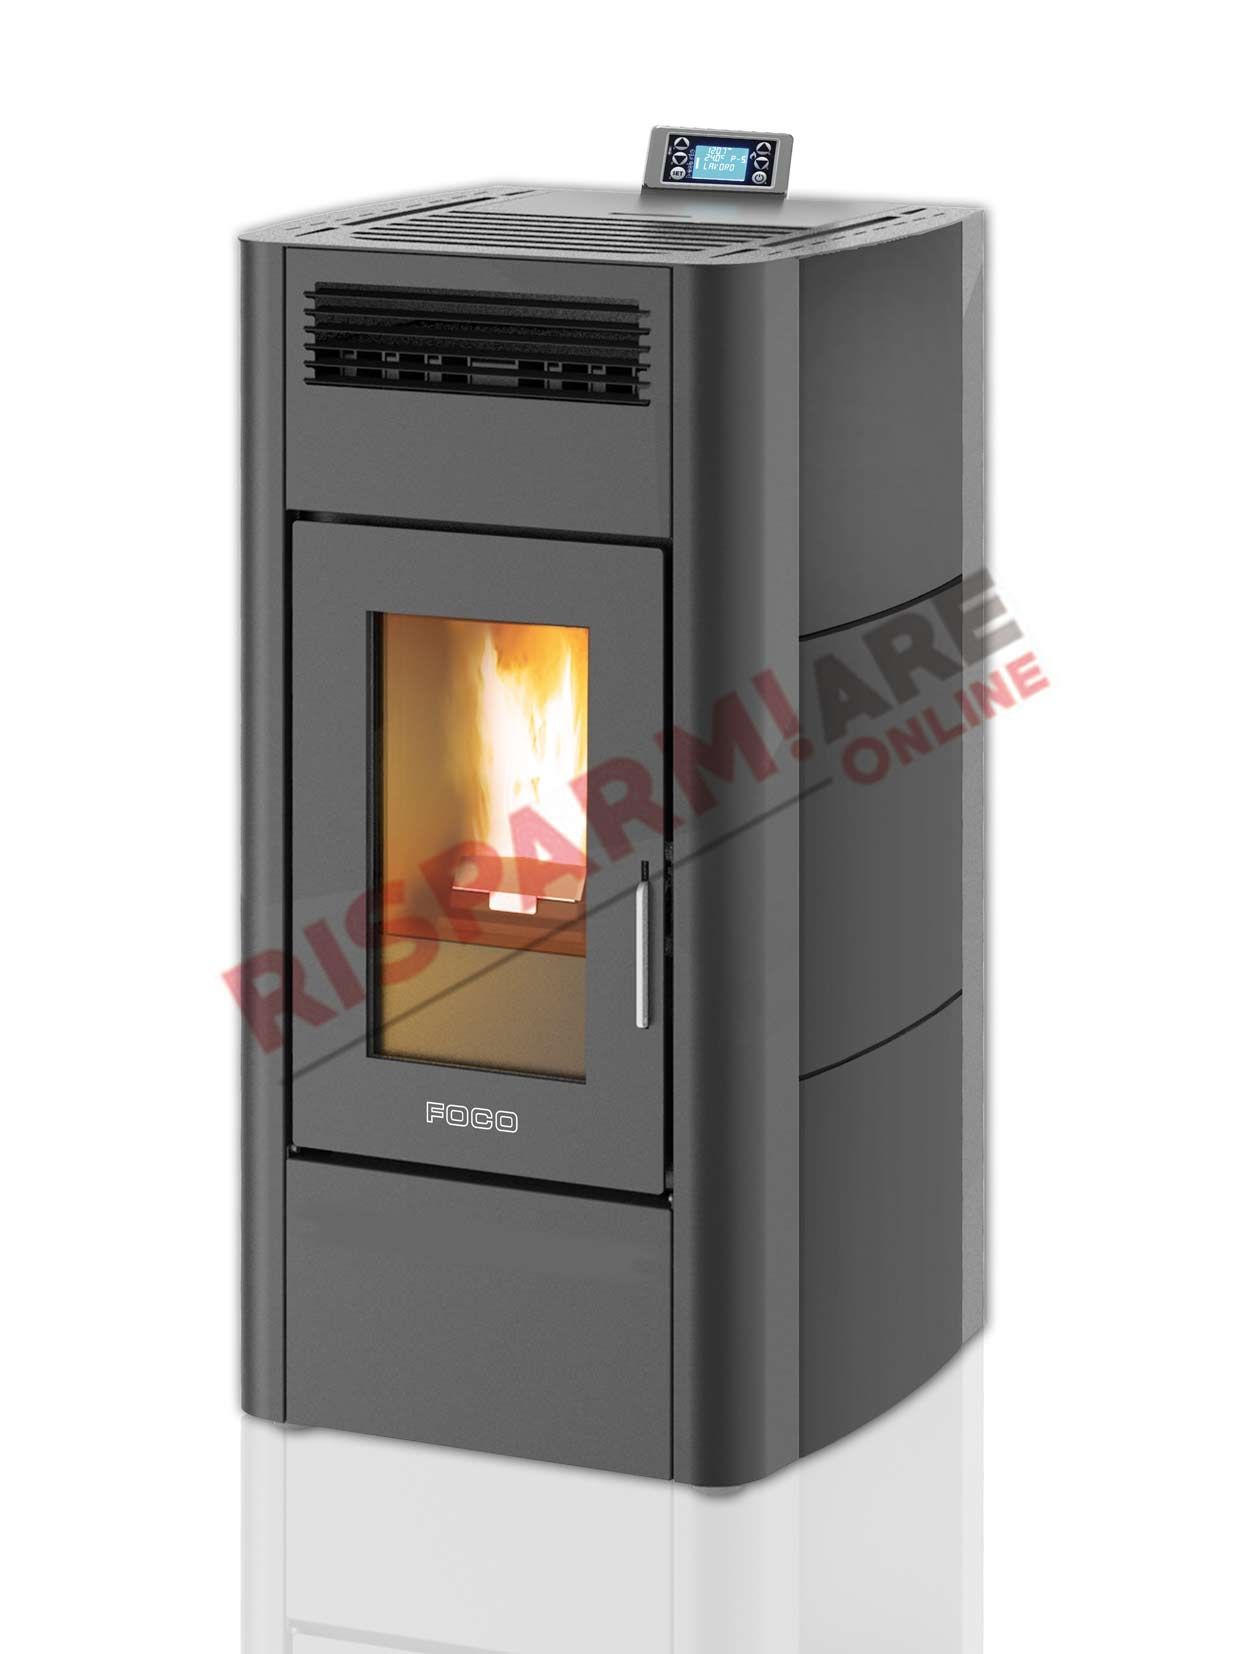 Foco stufa a pellet traditional majolica 16 15 10kw for Foco stufe pellet